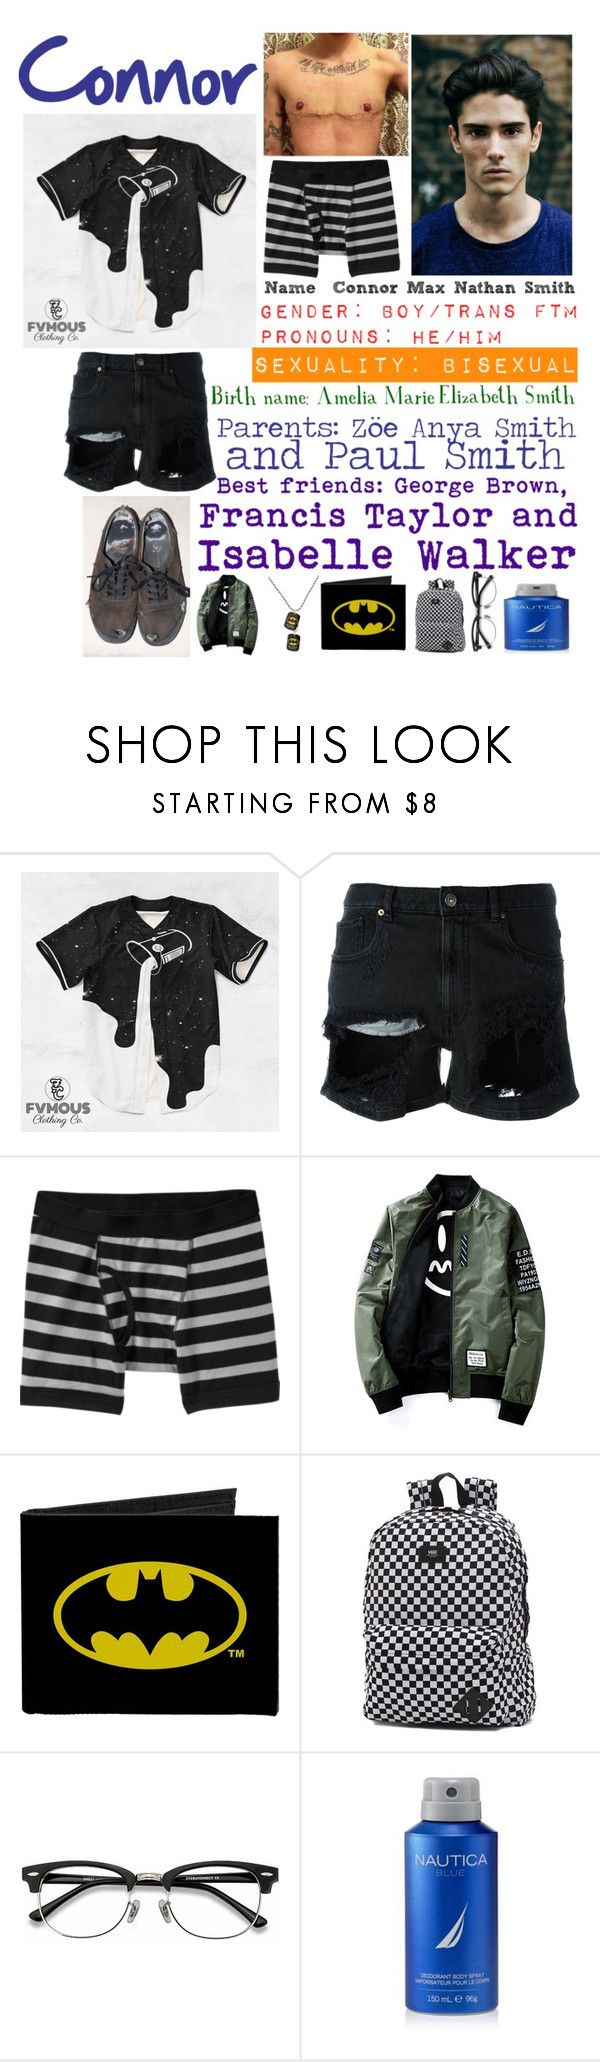 """""""Connor"""" by llamapoop ❤ liked on Polyvore featuring GaÃ«lle Bonheur, Old Navy, Vans, Ace, Nautica, men's fashion and menswear"""